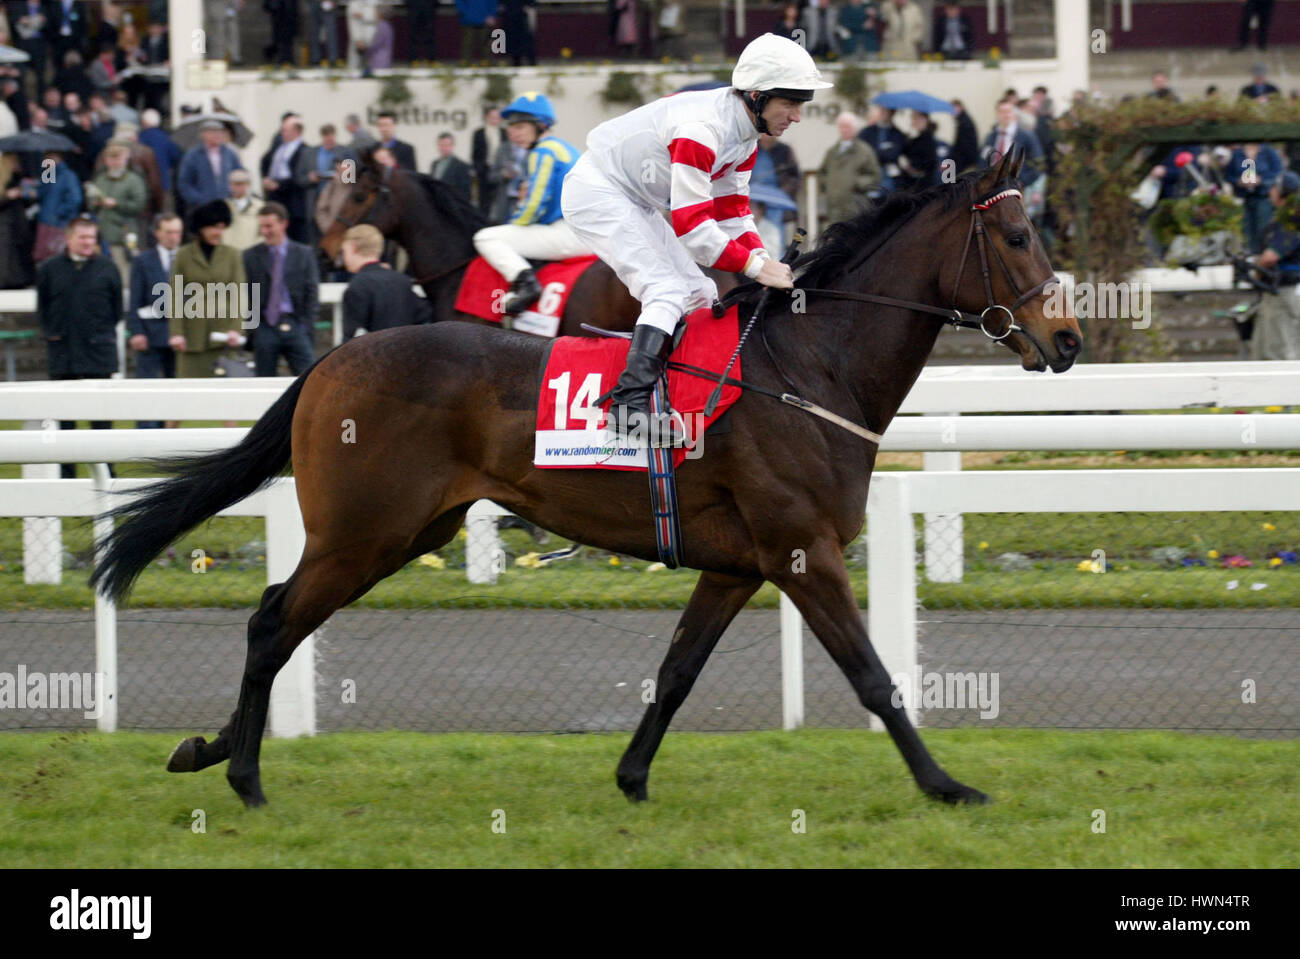 SULTAN GAMAL RIDDEN BY J.FORTUNE DONCASTER RACECOURSE DONCASTER 21 March 2002 - Stock Image